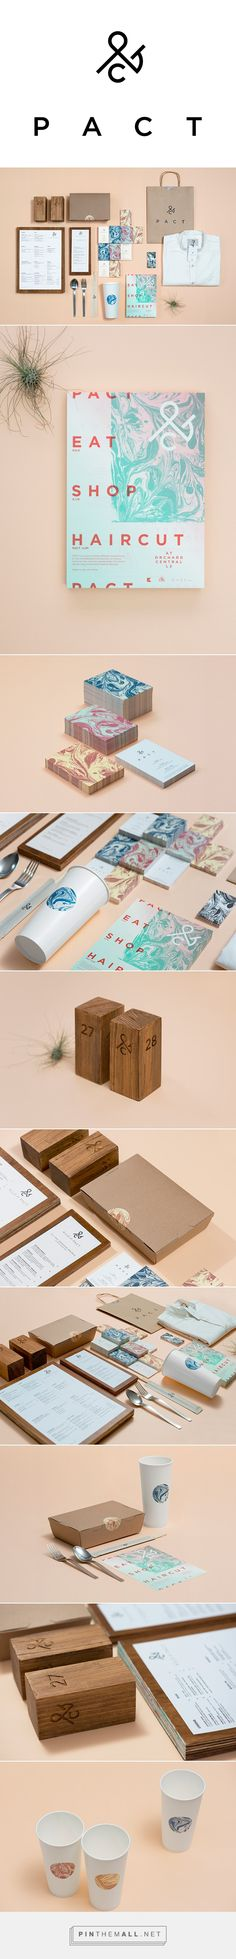 PACT Restaurant Branding and Menu Design by ACRE | Fivestar Branding Agency – Design and Branding Agency & Curated Inspiration Gallery